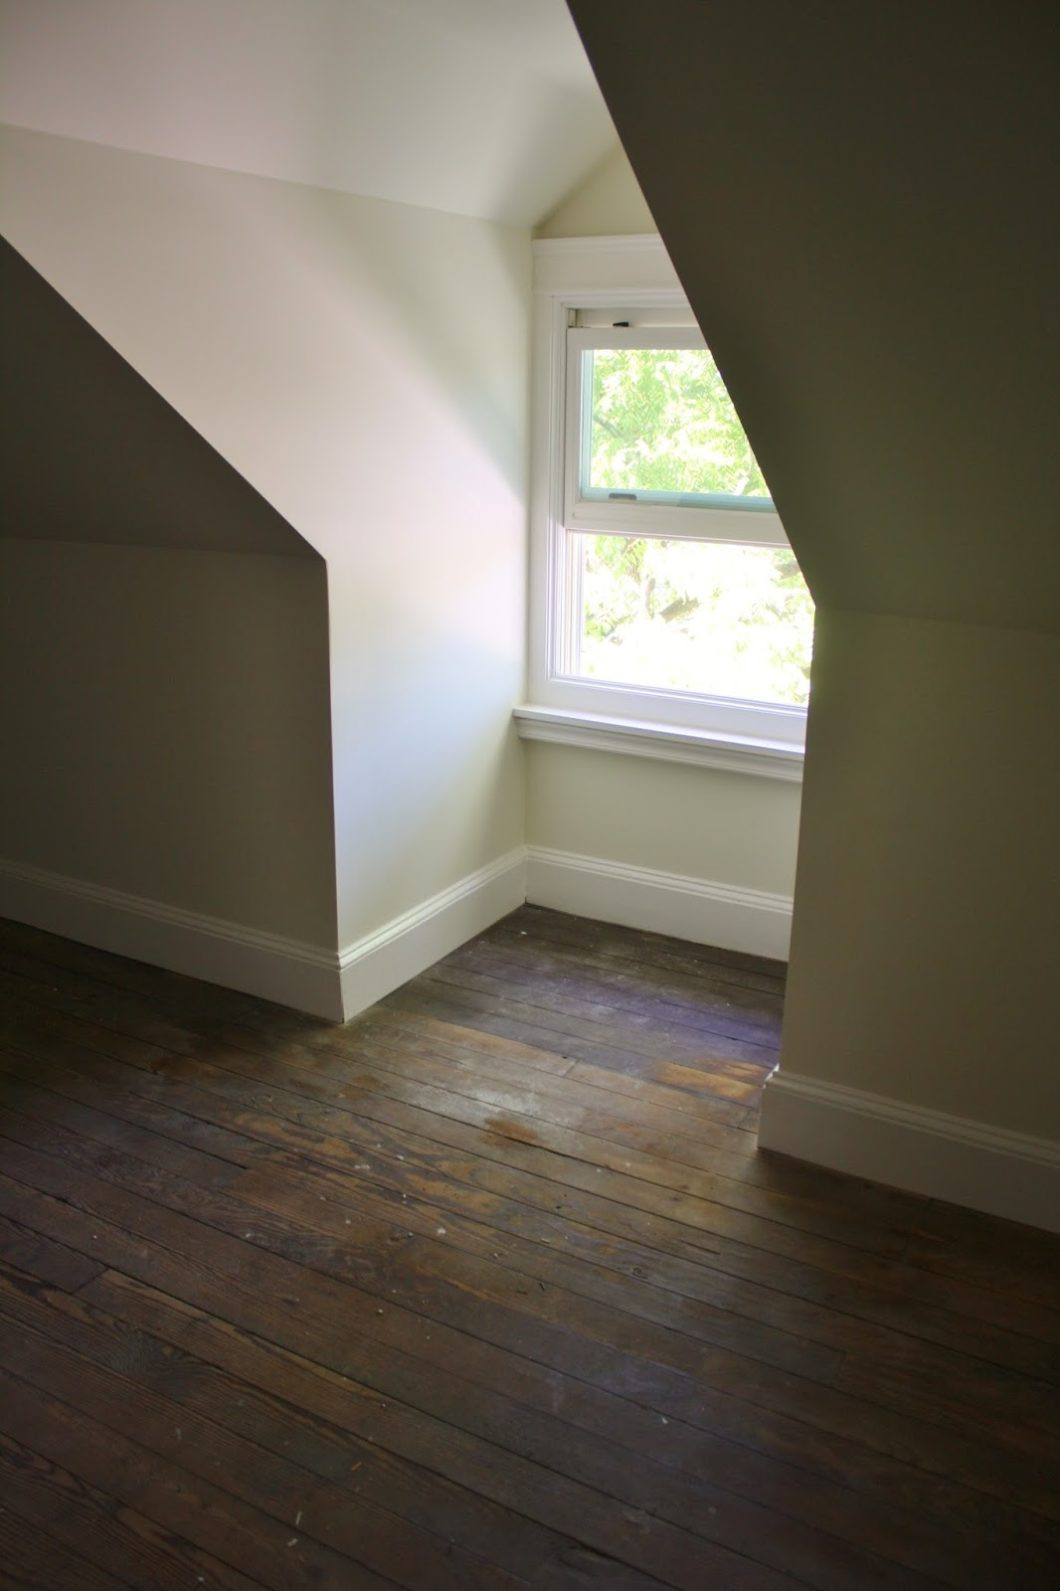 Restaining Hardwood Floors Darker without Sanding Of Image Number 6568 From Post Restoring Old Hardwood Floors Will for High Street Market Floor Refinished Hardwood Diy Restoring Old Floors Will Wood Refinishing Parquet Stripping and